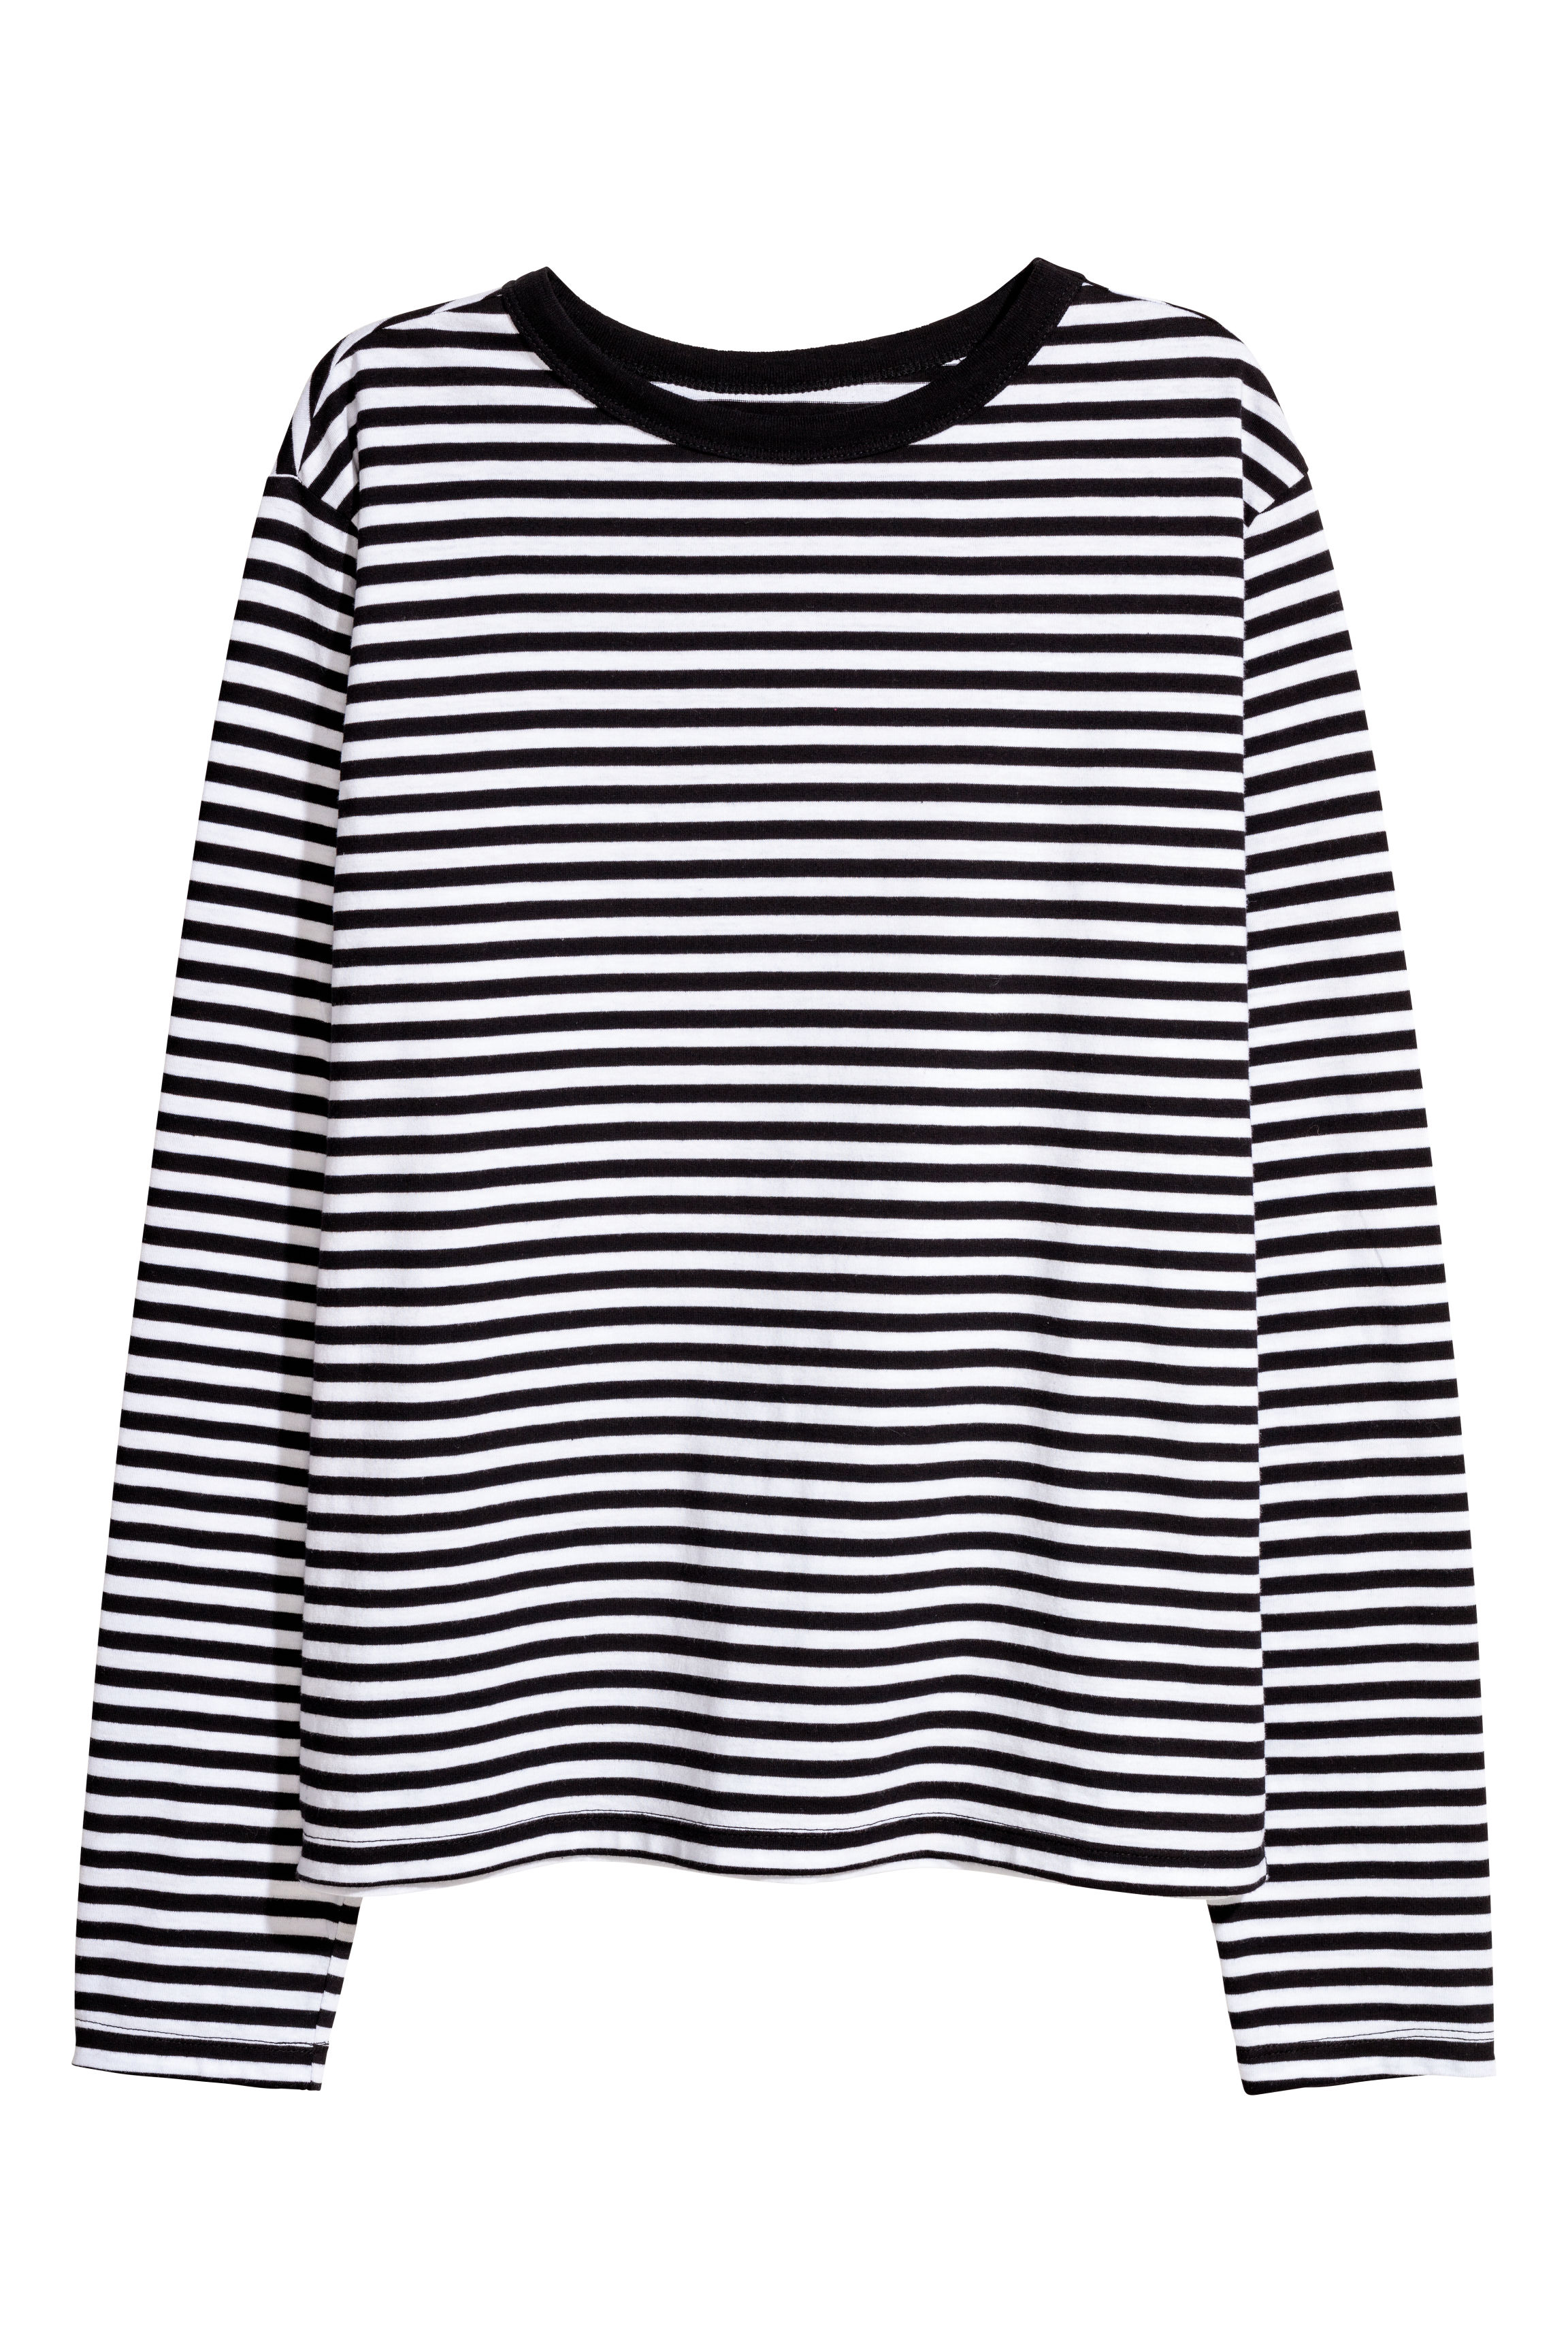 774cb01a7d7 Striped jersey top - Red White striped -